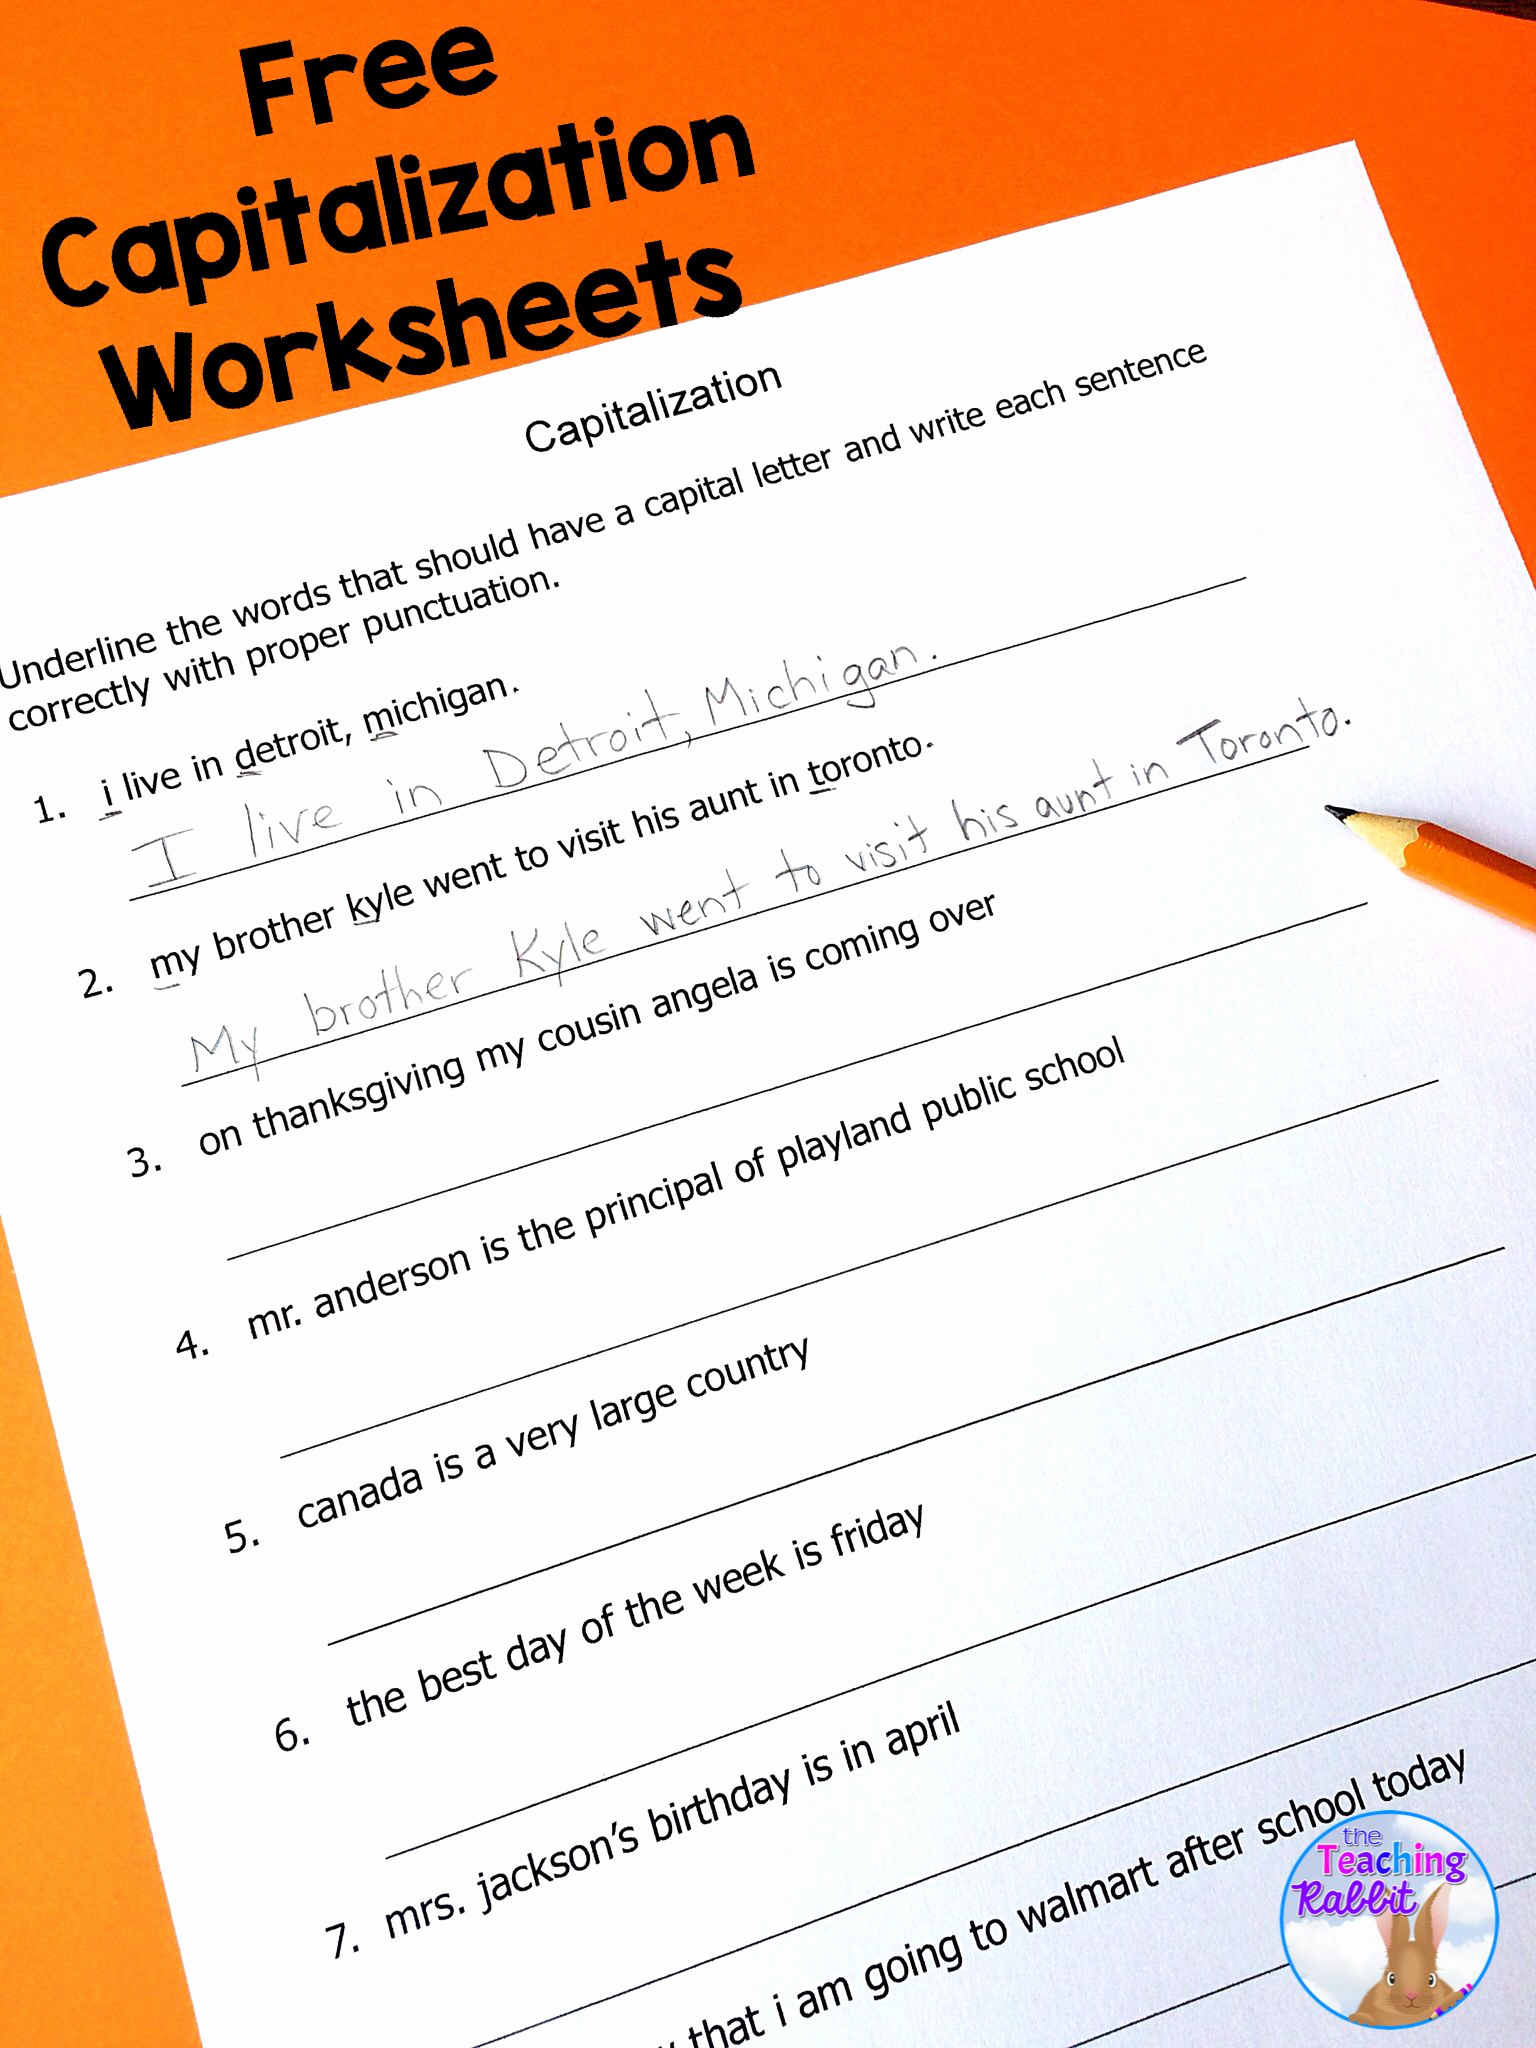 Capitalization Worksheets 4th Grade Pdf Lovely 20 Capitalization Worksheets 4th Grade Pdf